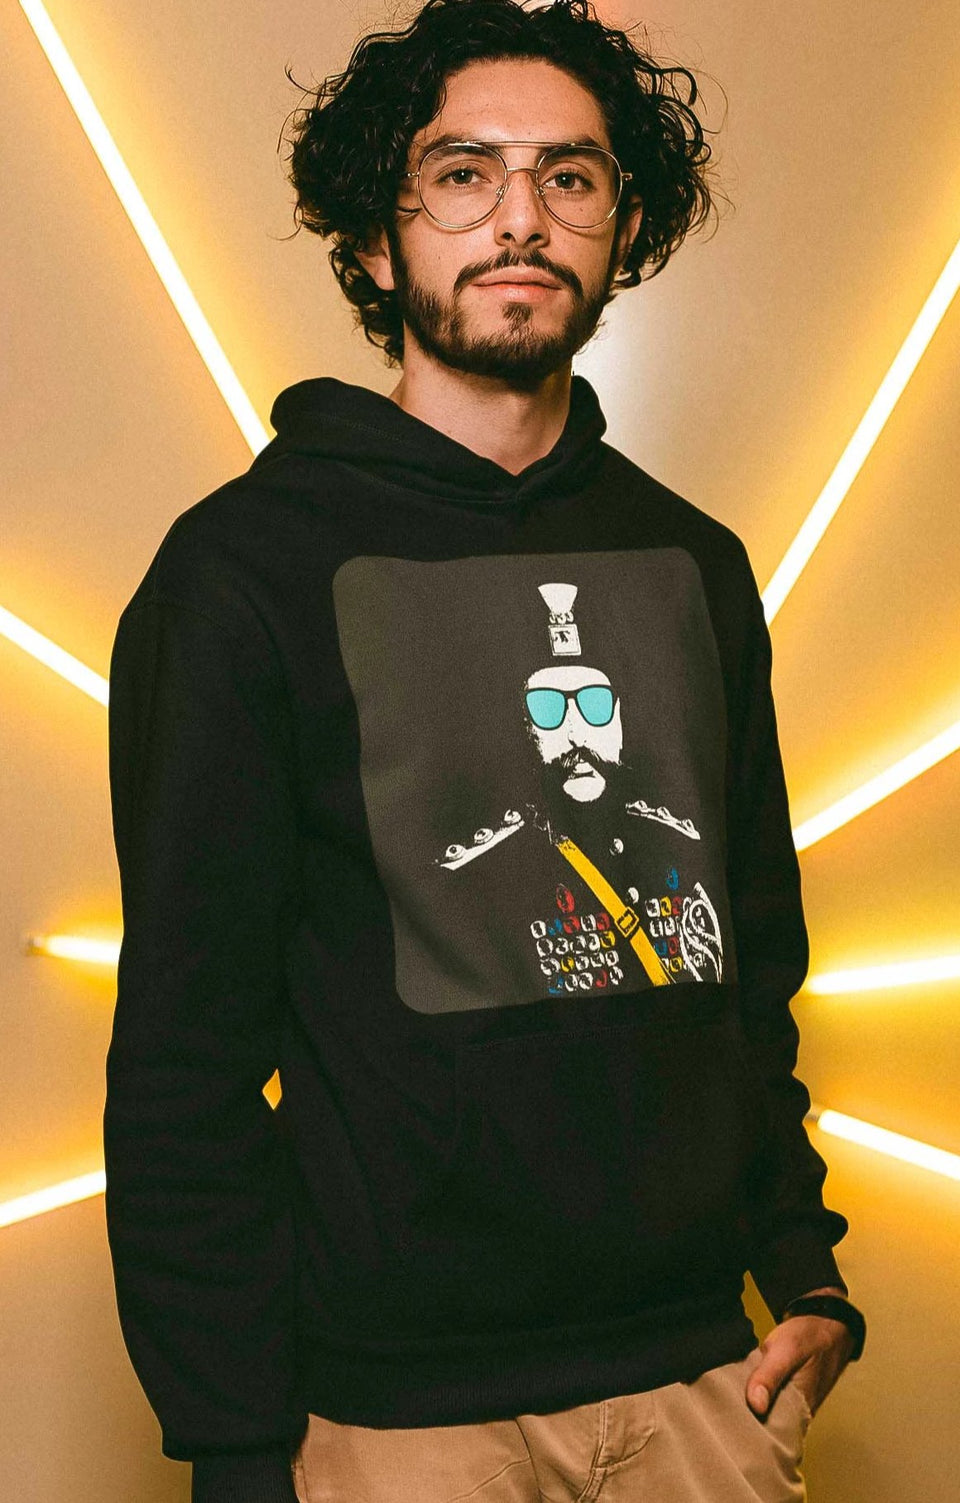 The Cool Shah Hoodie